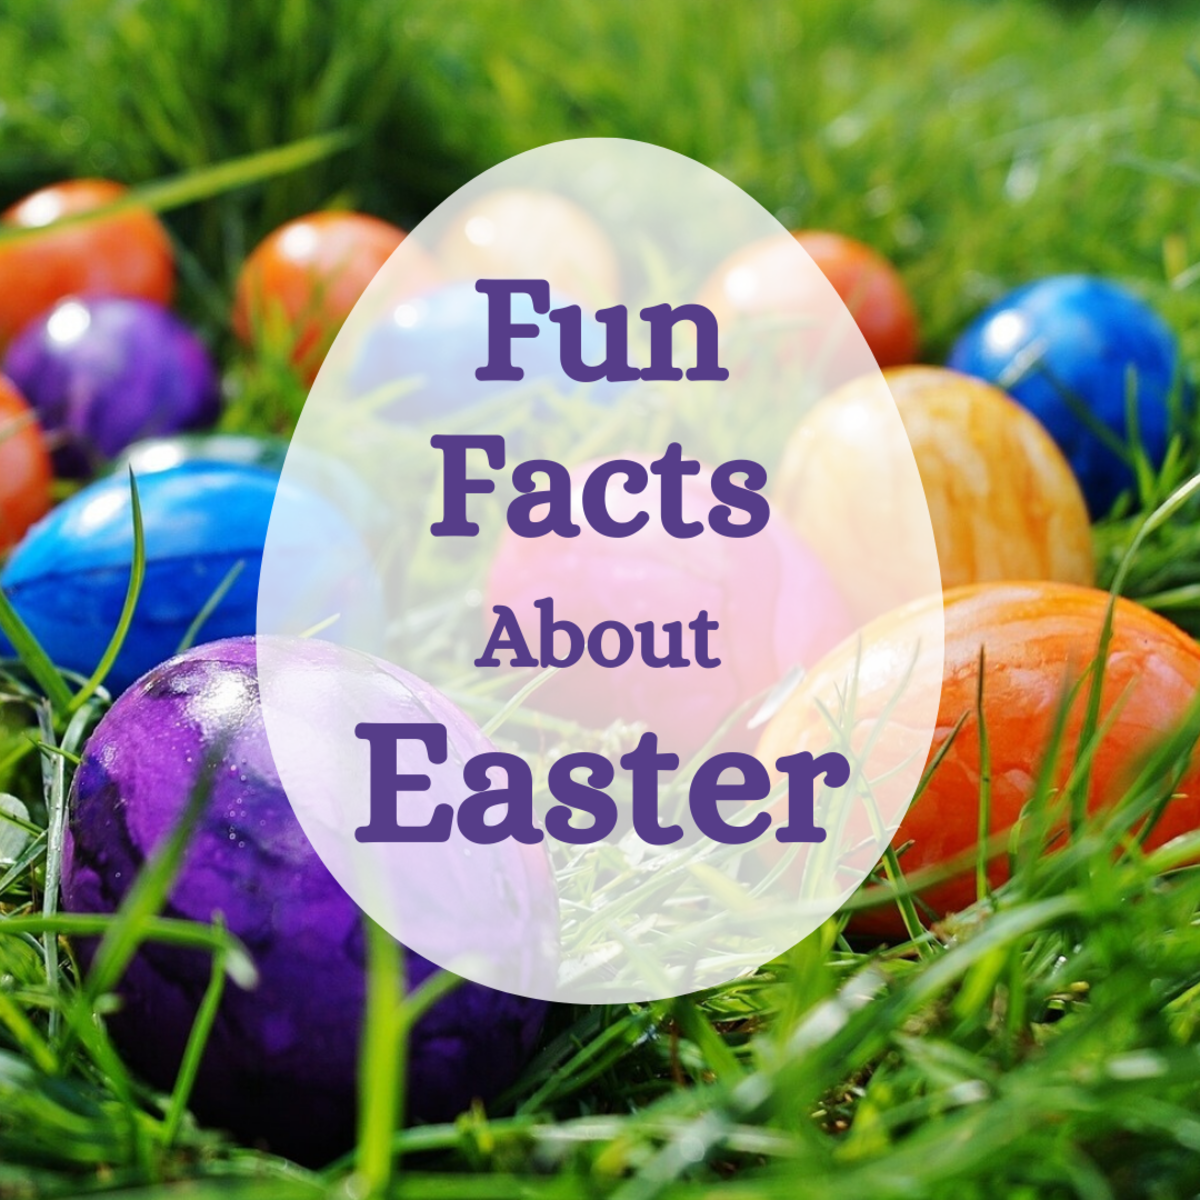 Learn more about the symbols, songs, religious traditions, treats, and fun associated with the Easter holiday.